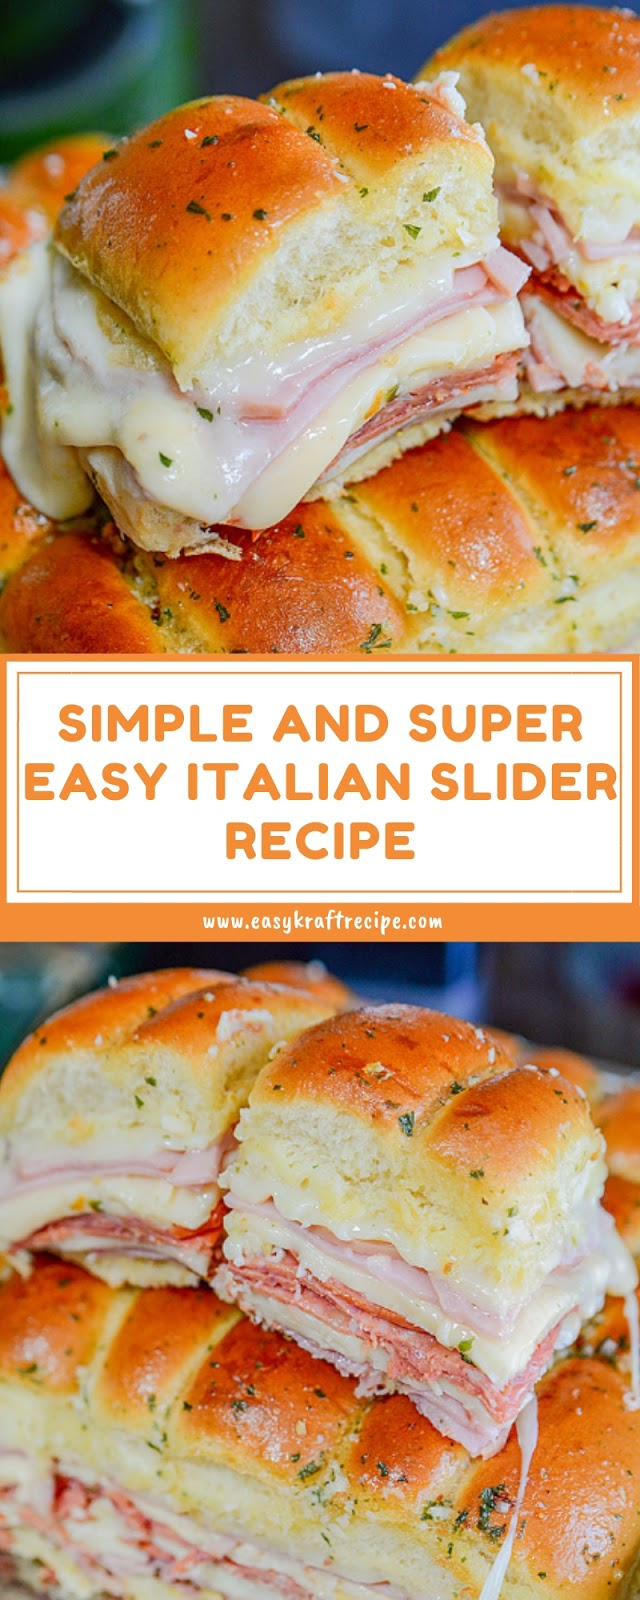 SIMPLE AND SUPER EASY ITALIAN SLIDER RECIPE